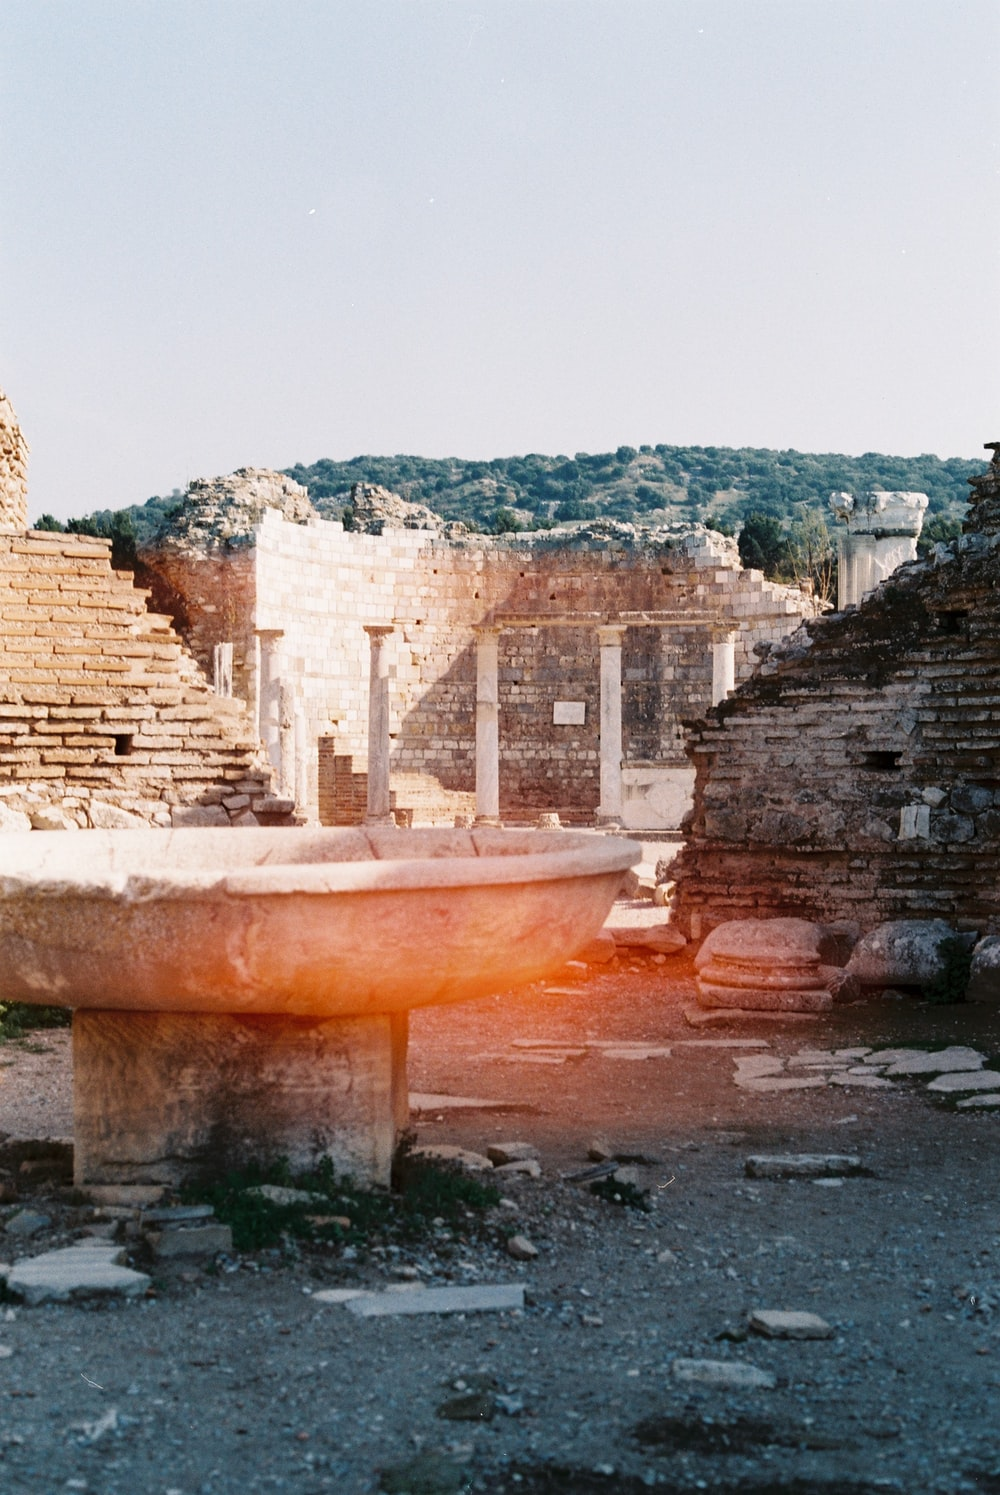 photography of ruin concrete buildings during daytime